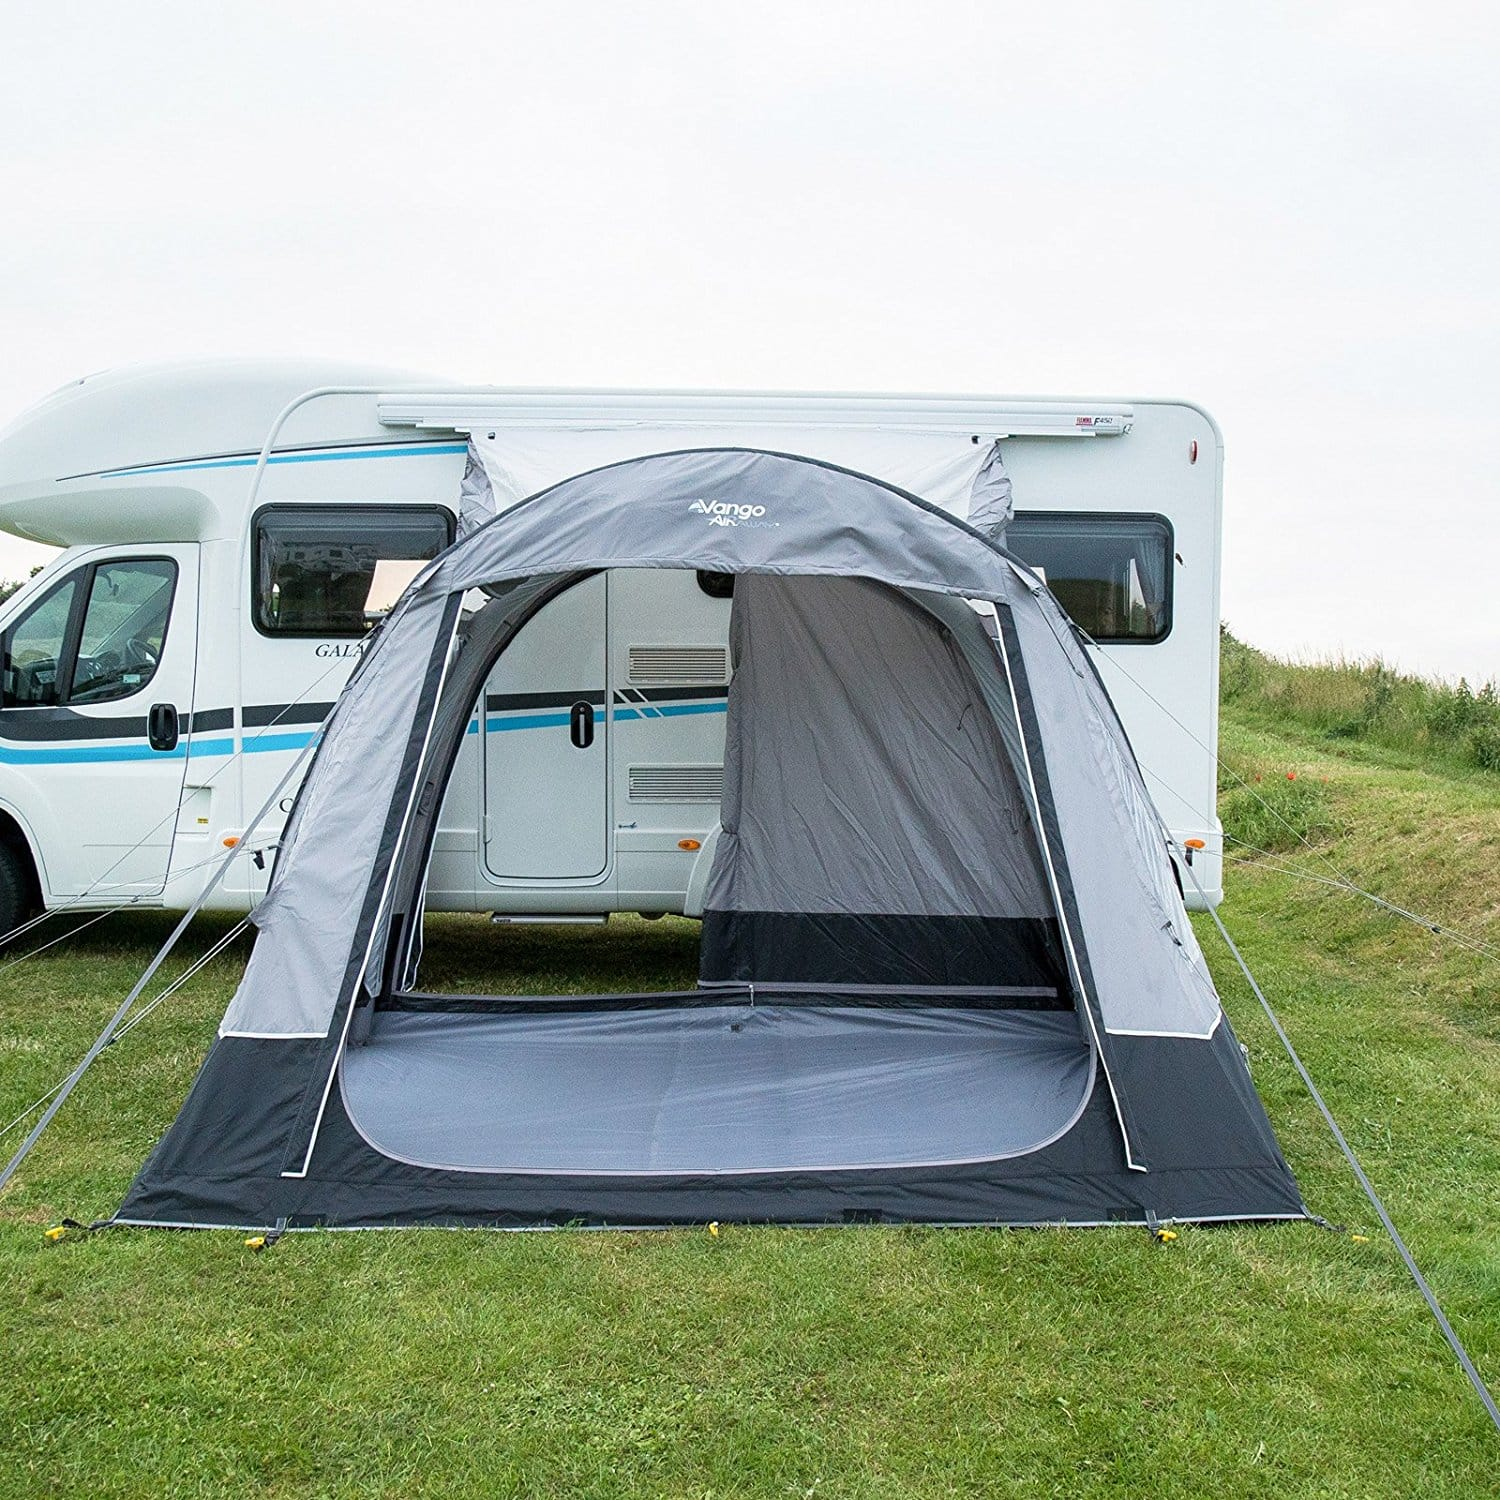 The #1 Best Inflatable Driveaway Awning For Campervans